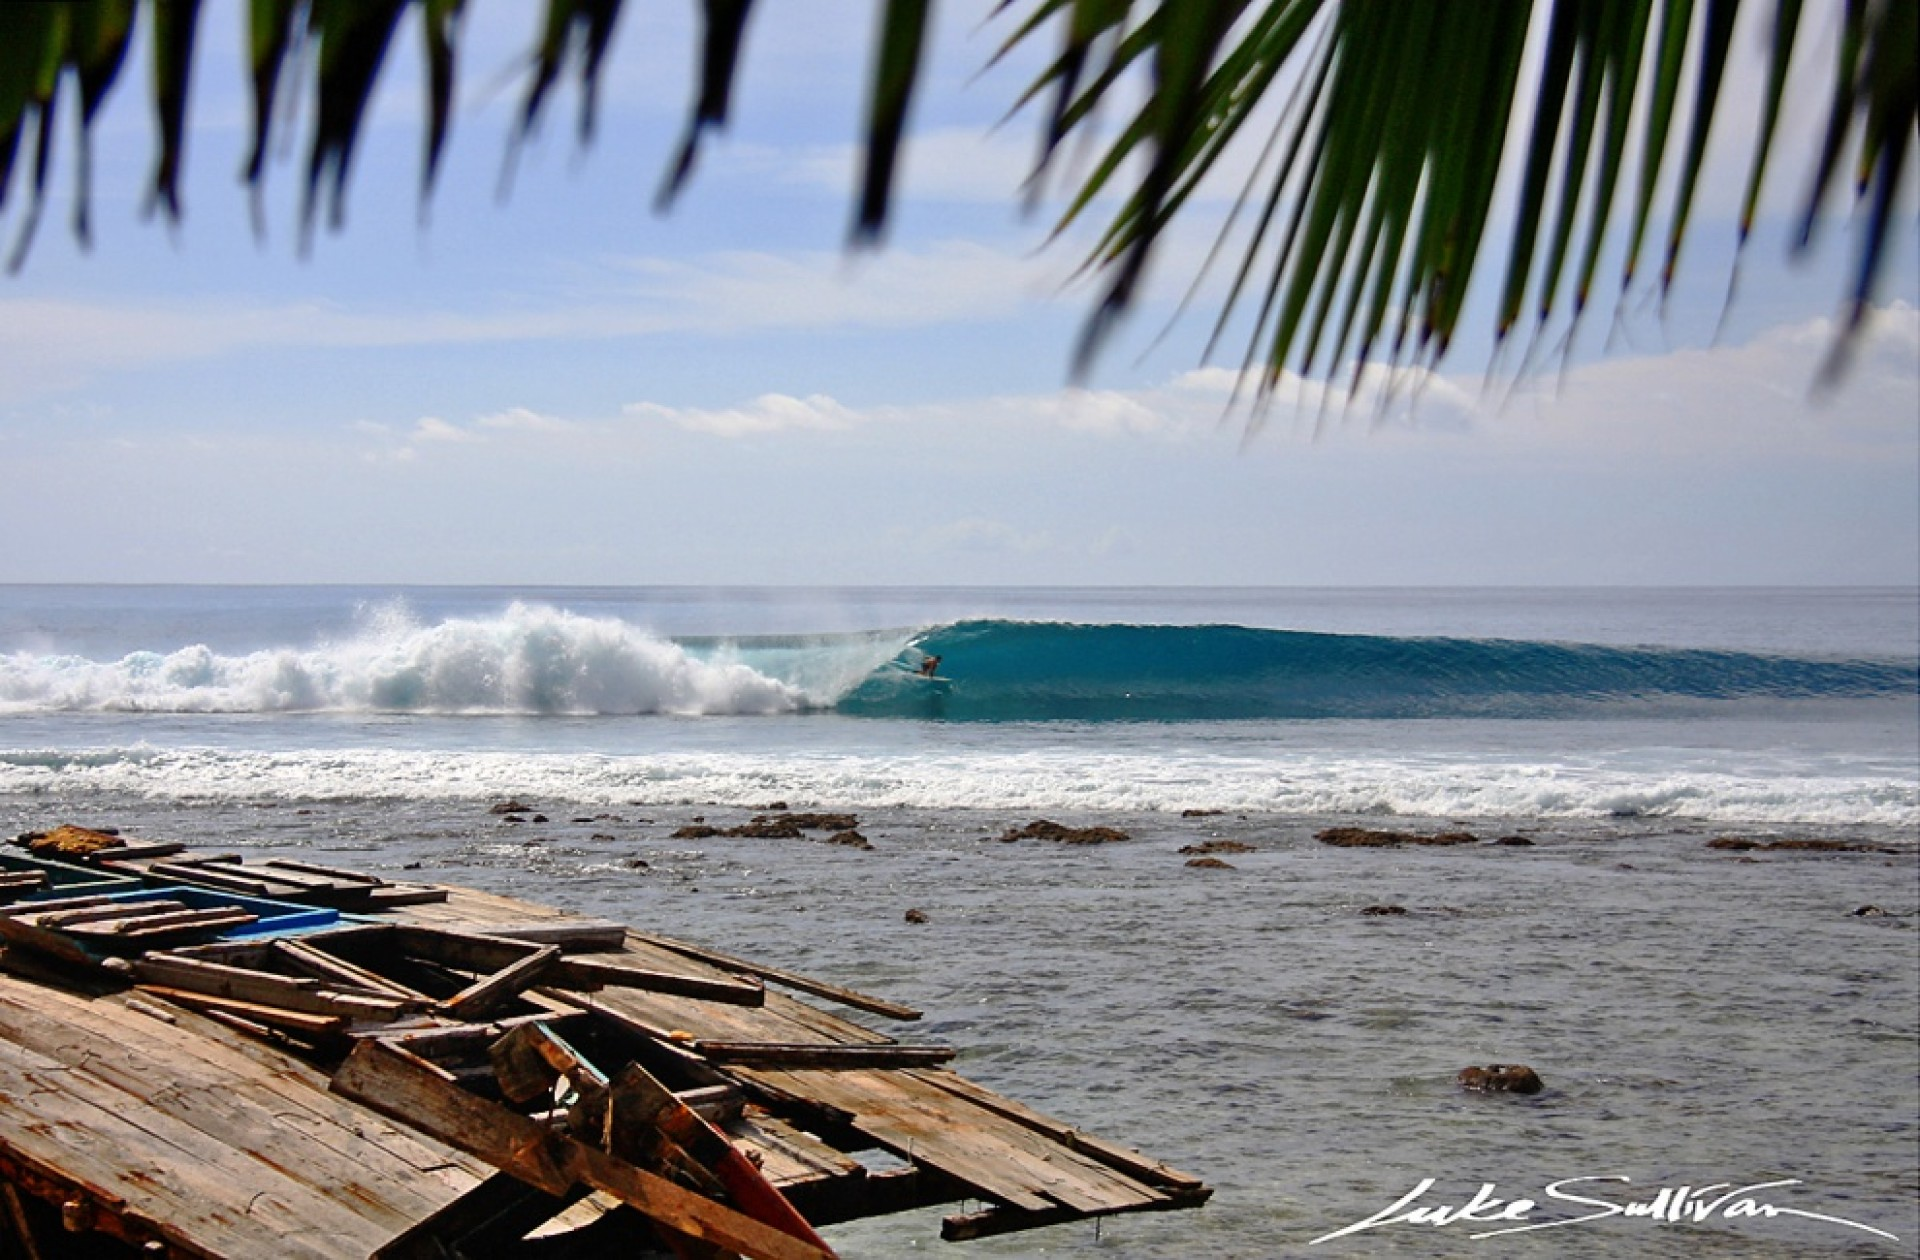 luke sullivan's photo of Secret (Nias)